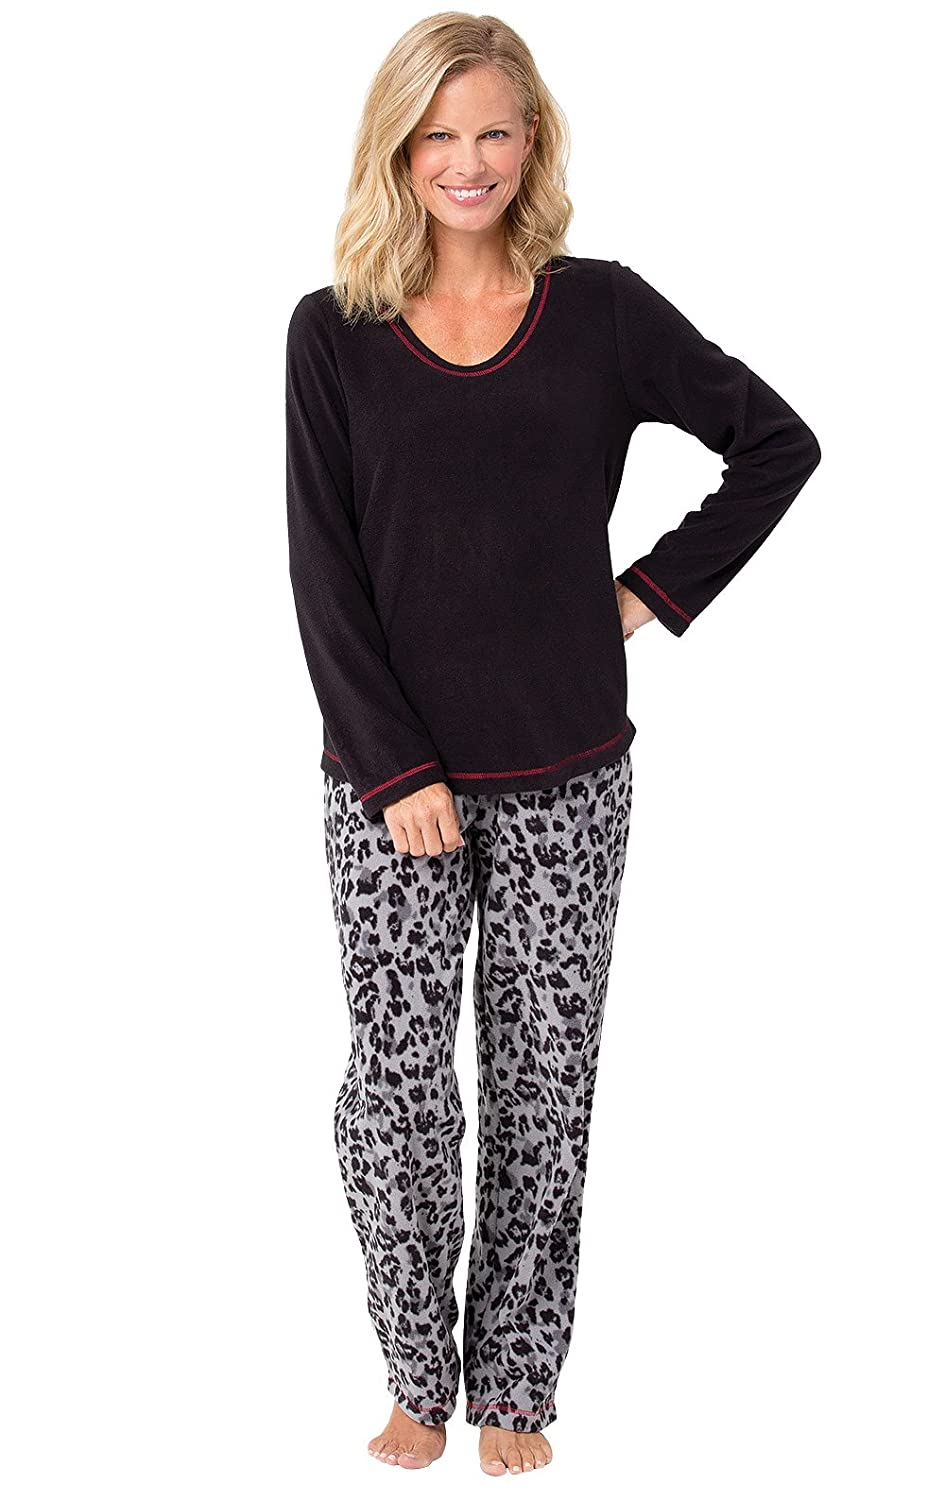 05ed4f1b15 Top 10 wholesale Fleece Pjs Womens - Chinabrands.com